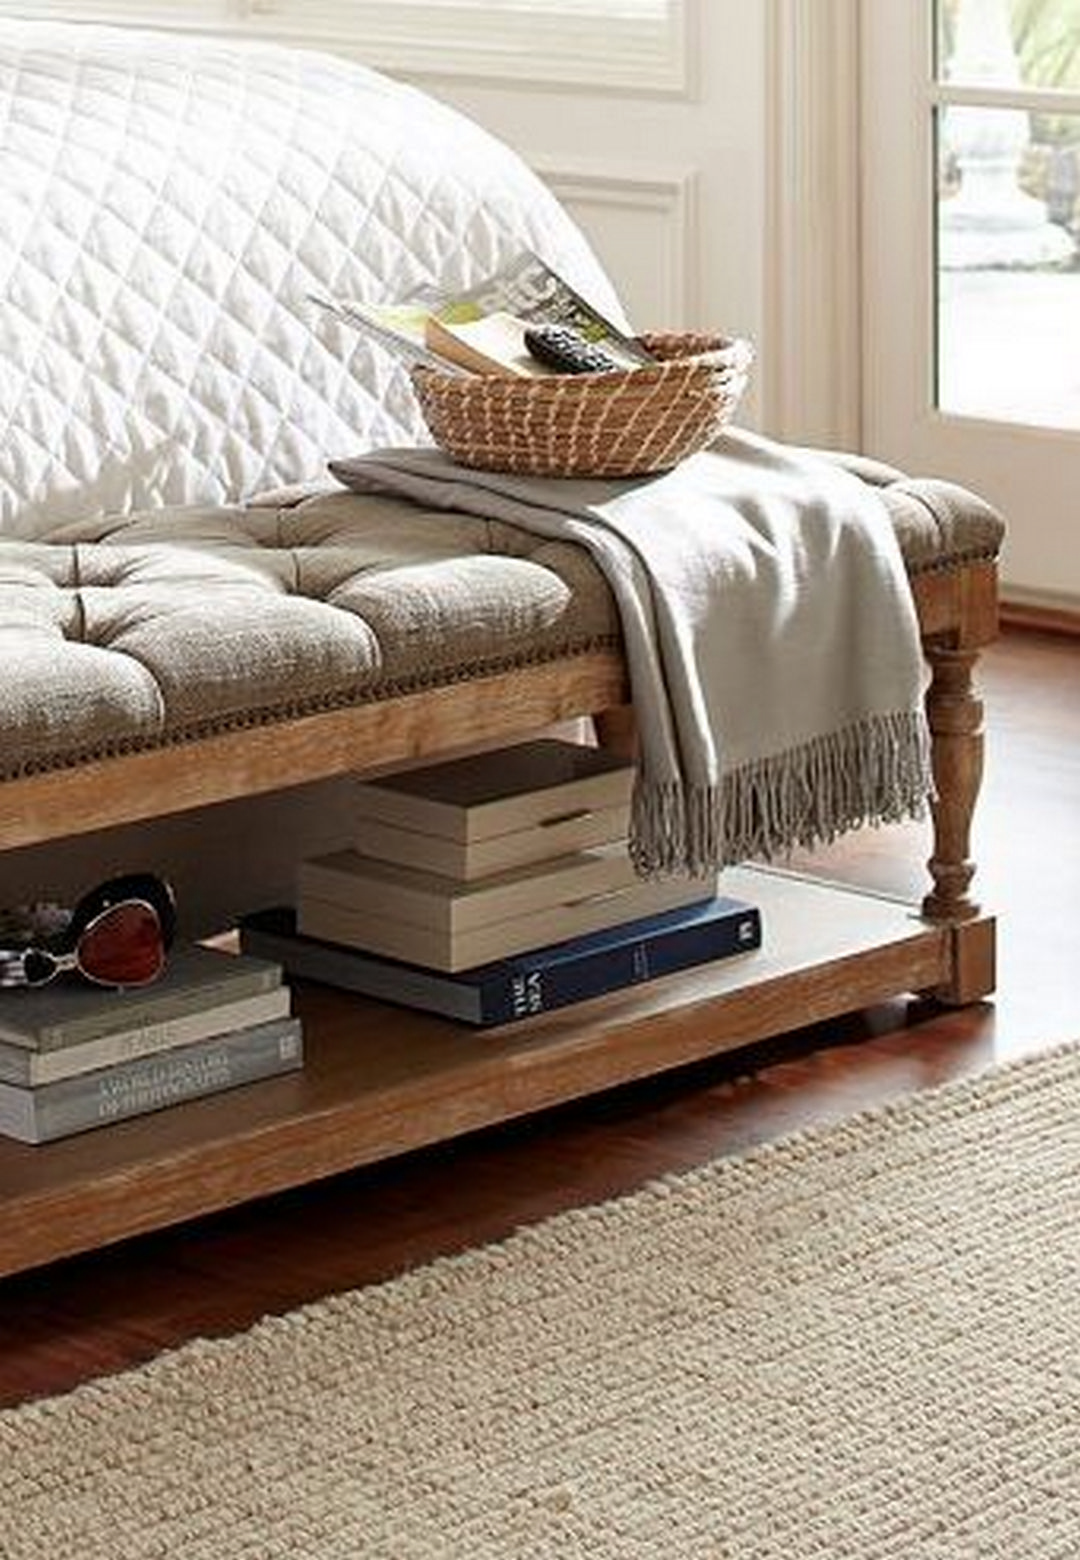 11 Stunning DIY Bedroom Storage Ideas  Storage bench bedroom, End